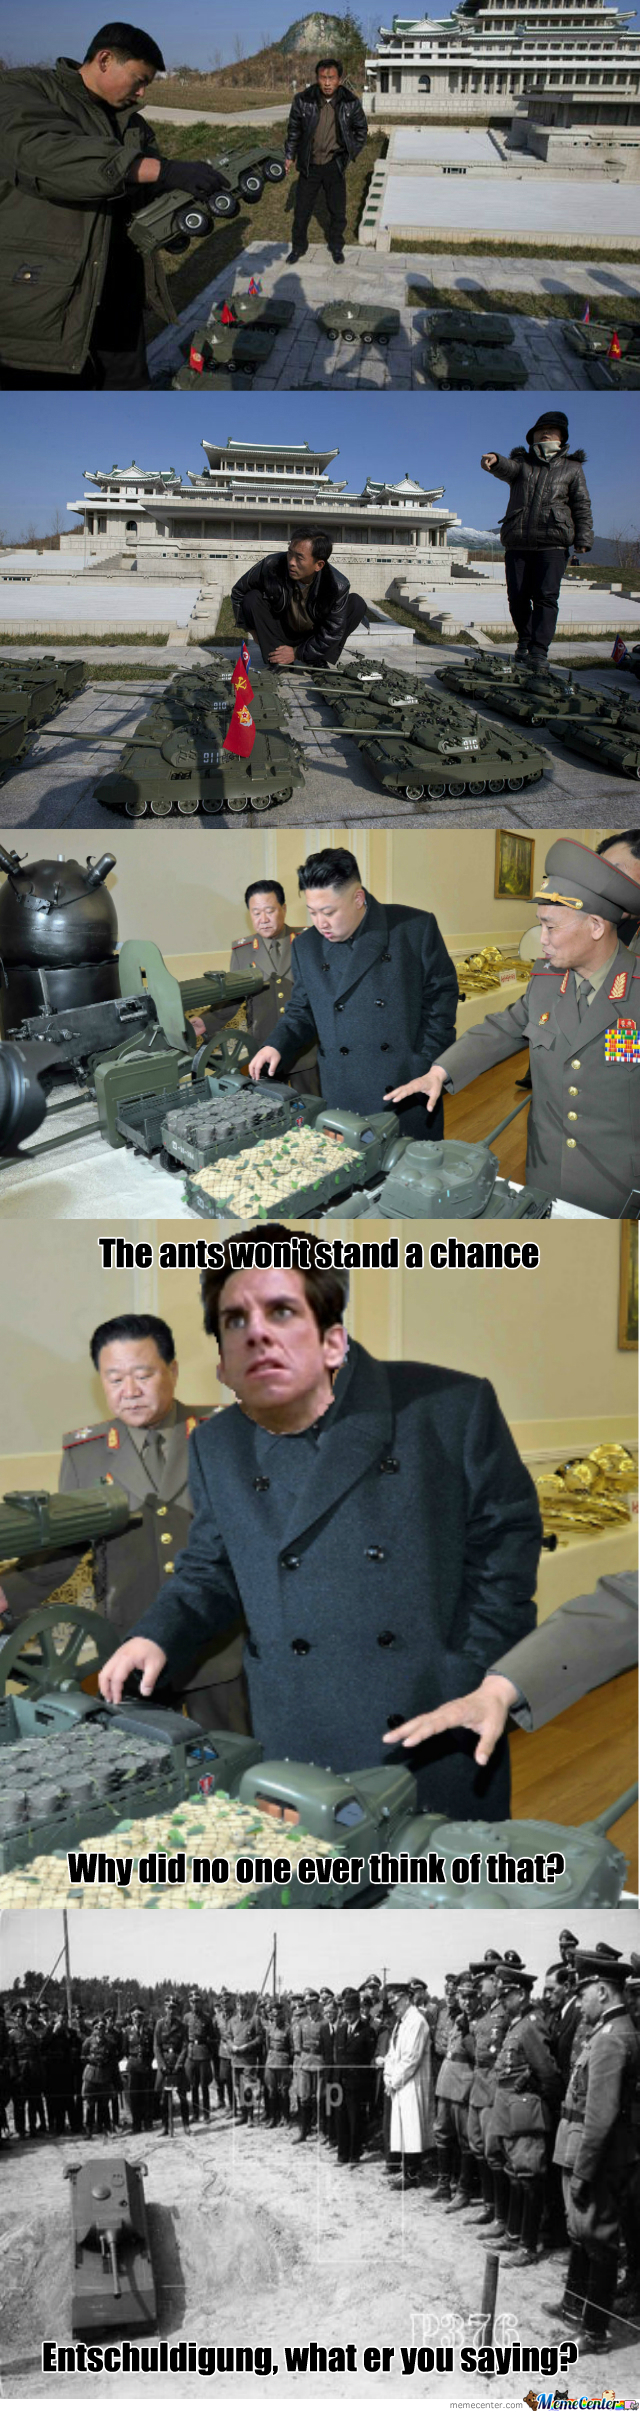 [RMX] North Korea's Army For Ants?!